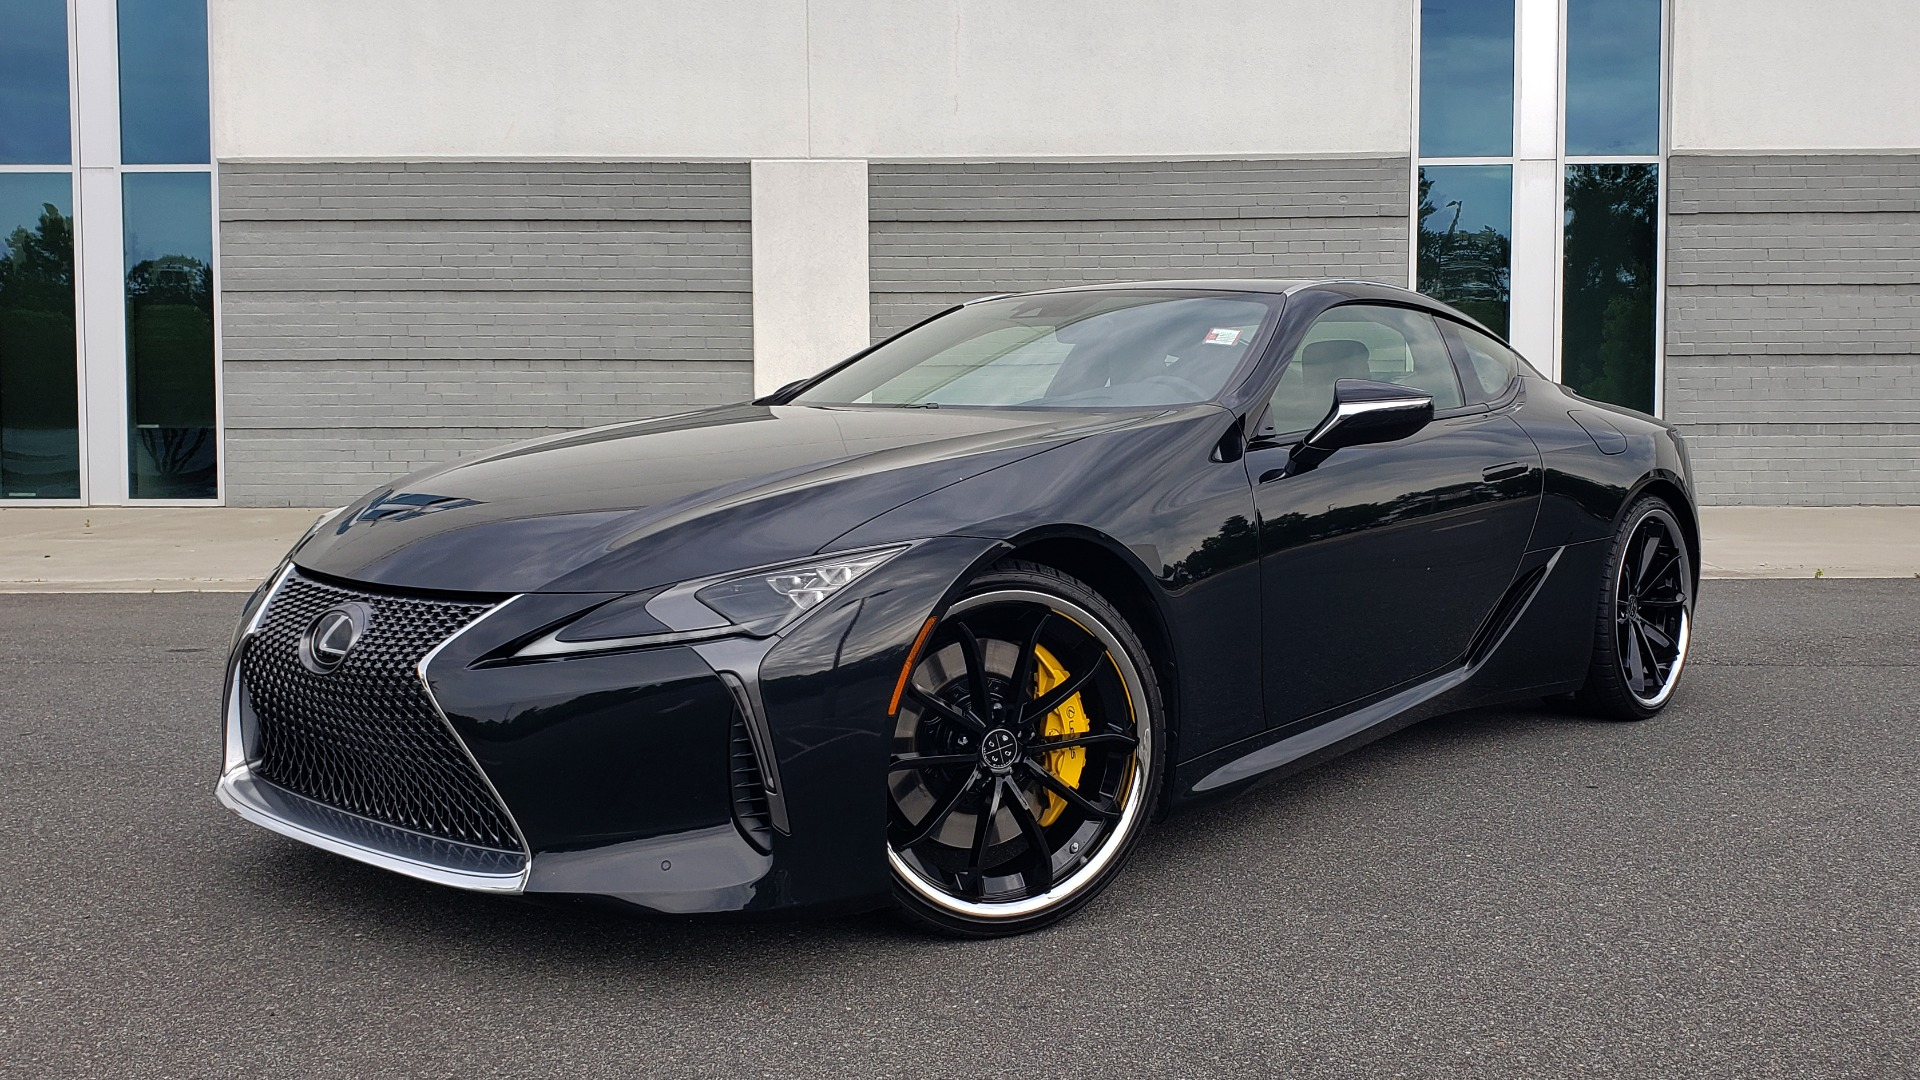 Used 2018 Lexus LC 500 COUPE / 5.0L V8 (471HP) / 10-SPD AUTO / HUD / SUNROOF / REARVIEW for sale Sold at Formula Imports in Charlotte NC 28227 1